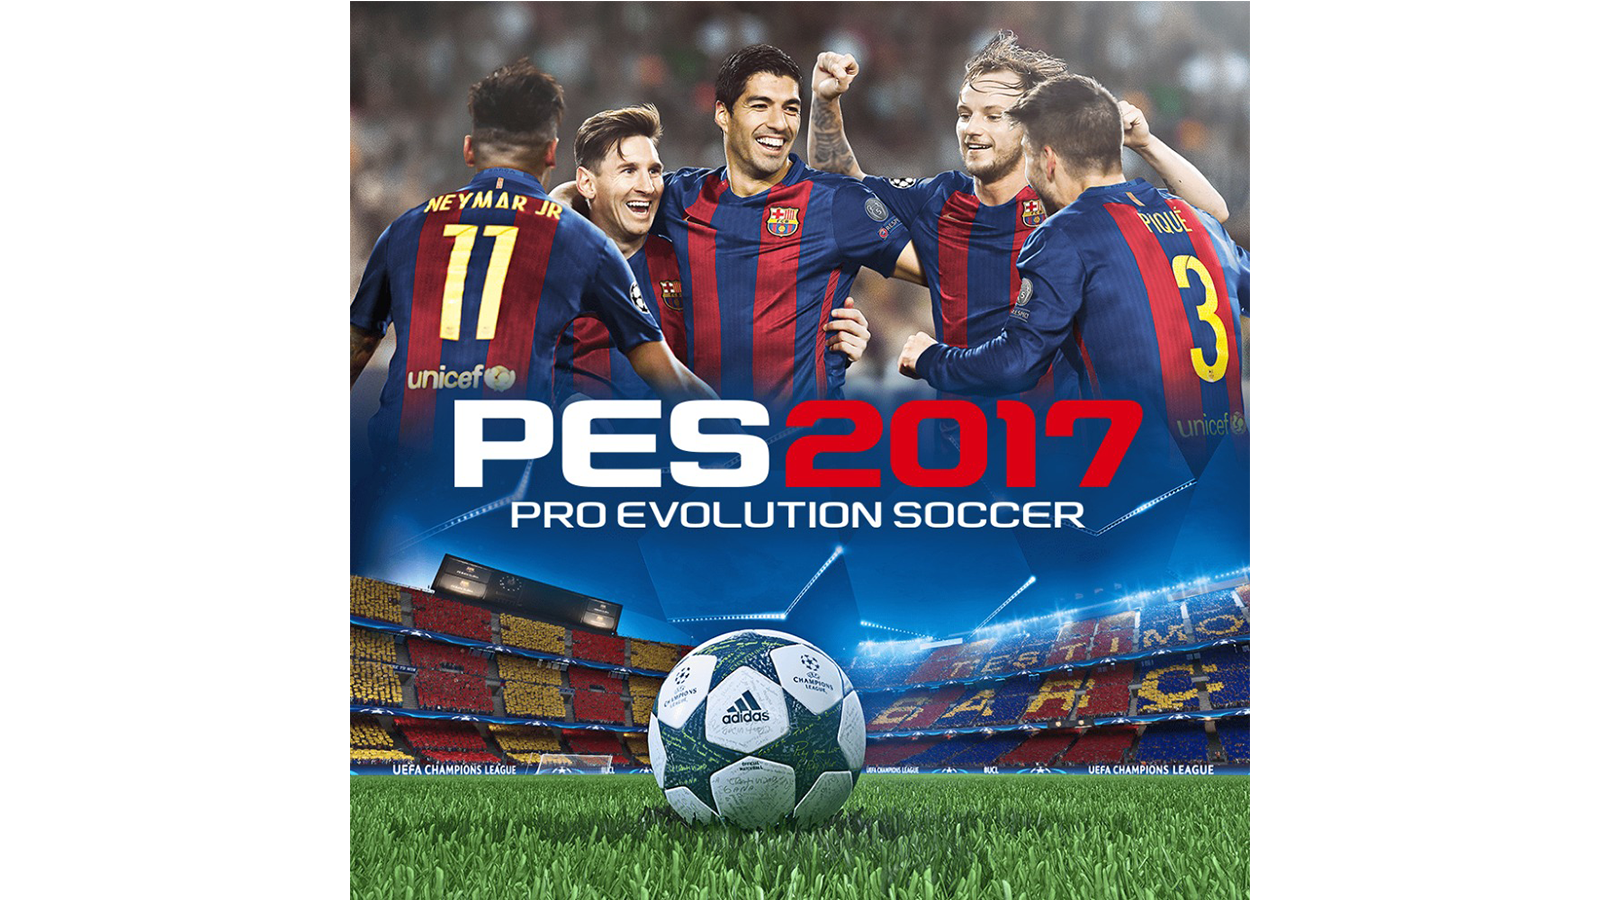 Pro Evolution Soccer 2017 Game Ps3 Playstation Bola Sepak Adidas Champions